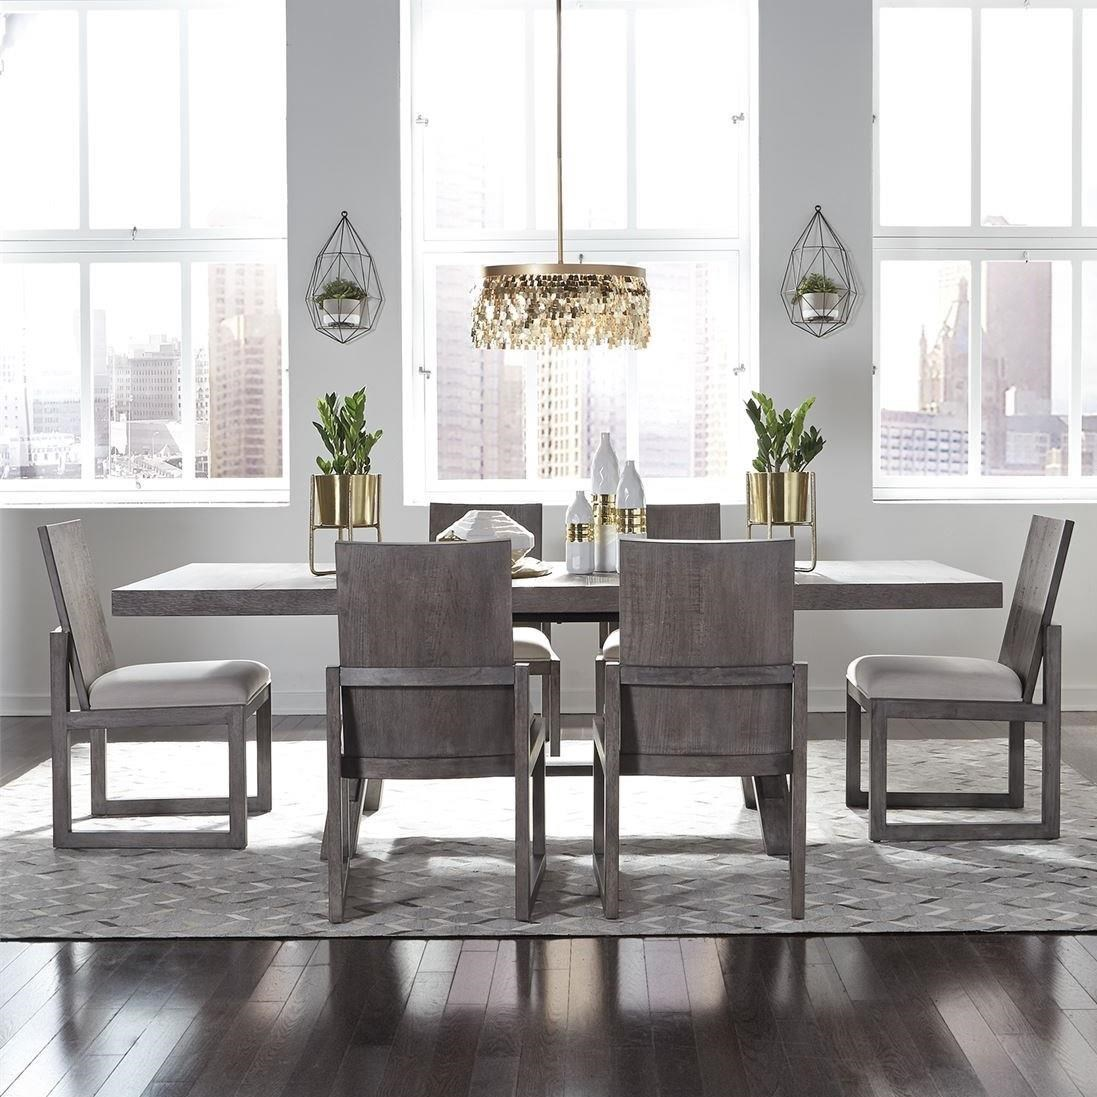 Modern Farmhouse 7-Piece Trestle Table and Chair Set by Libby at Walker's Furniture